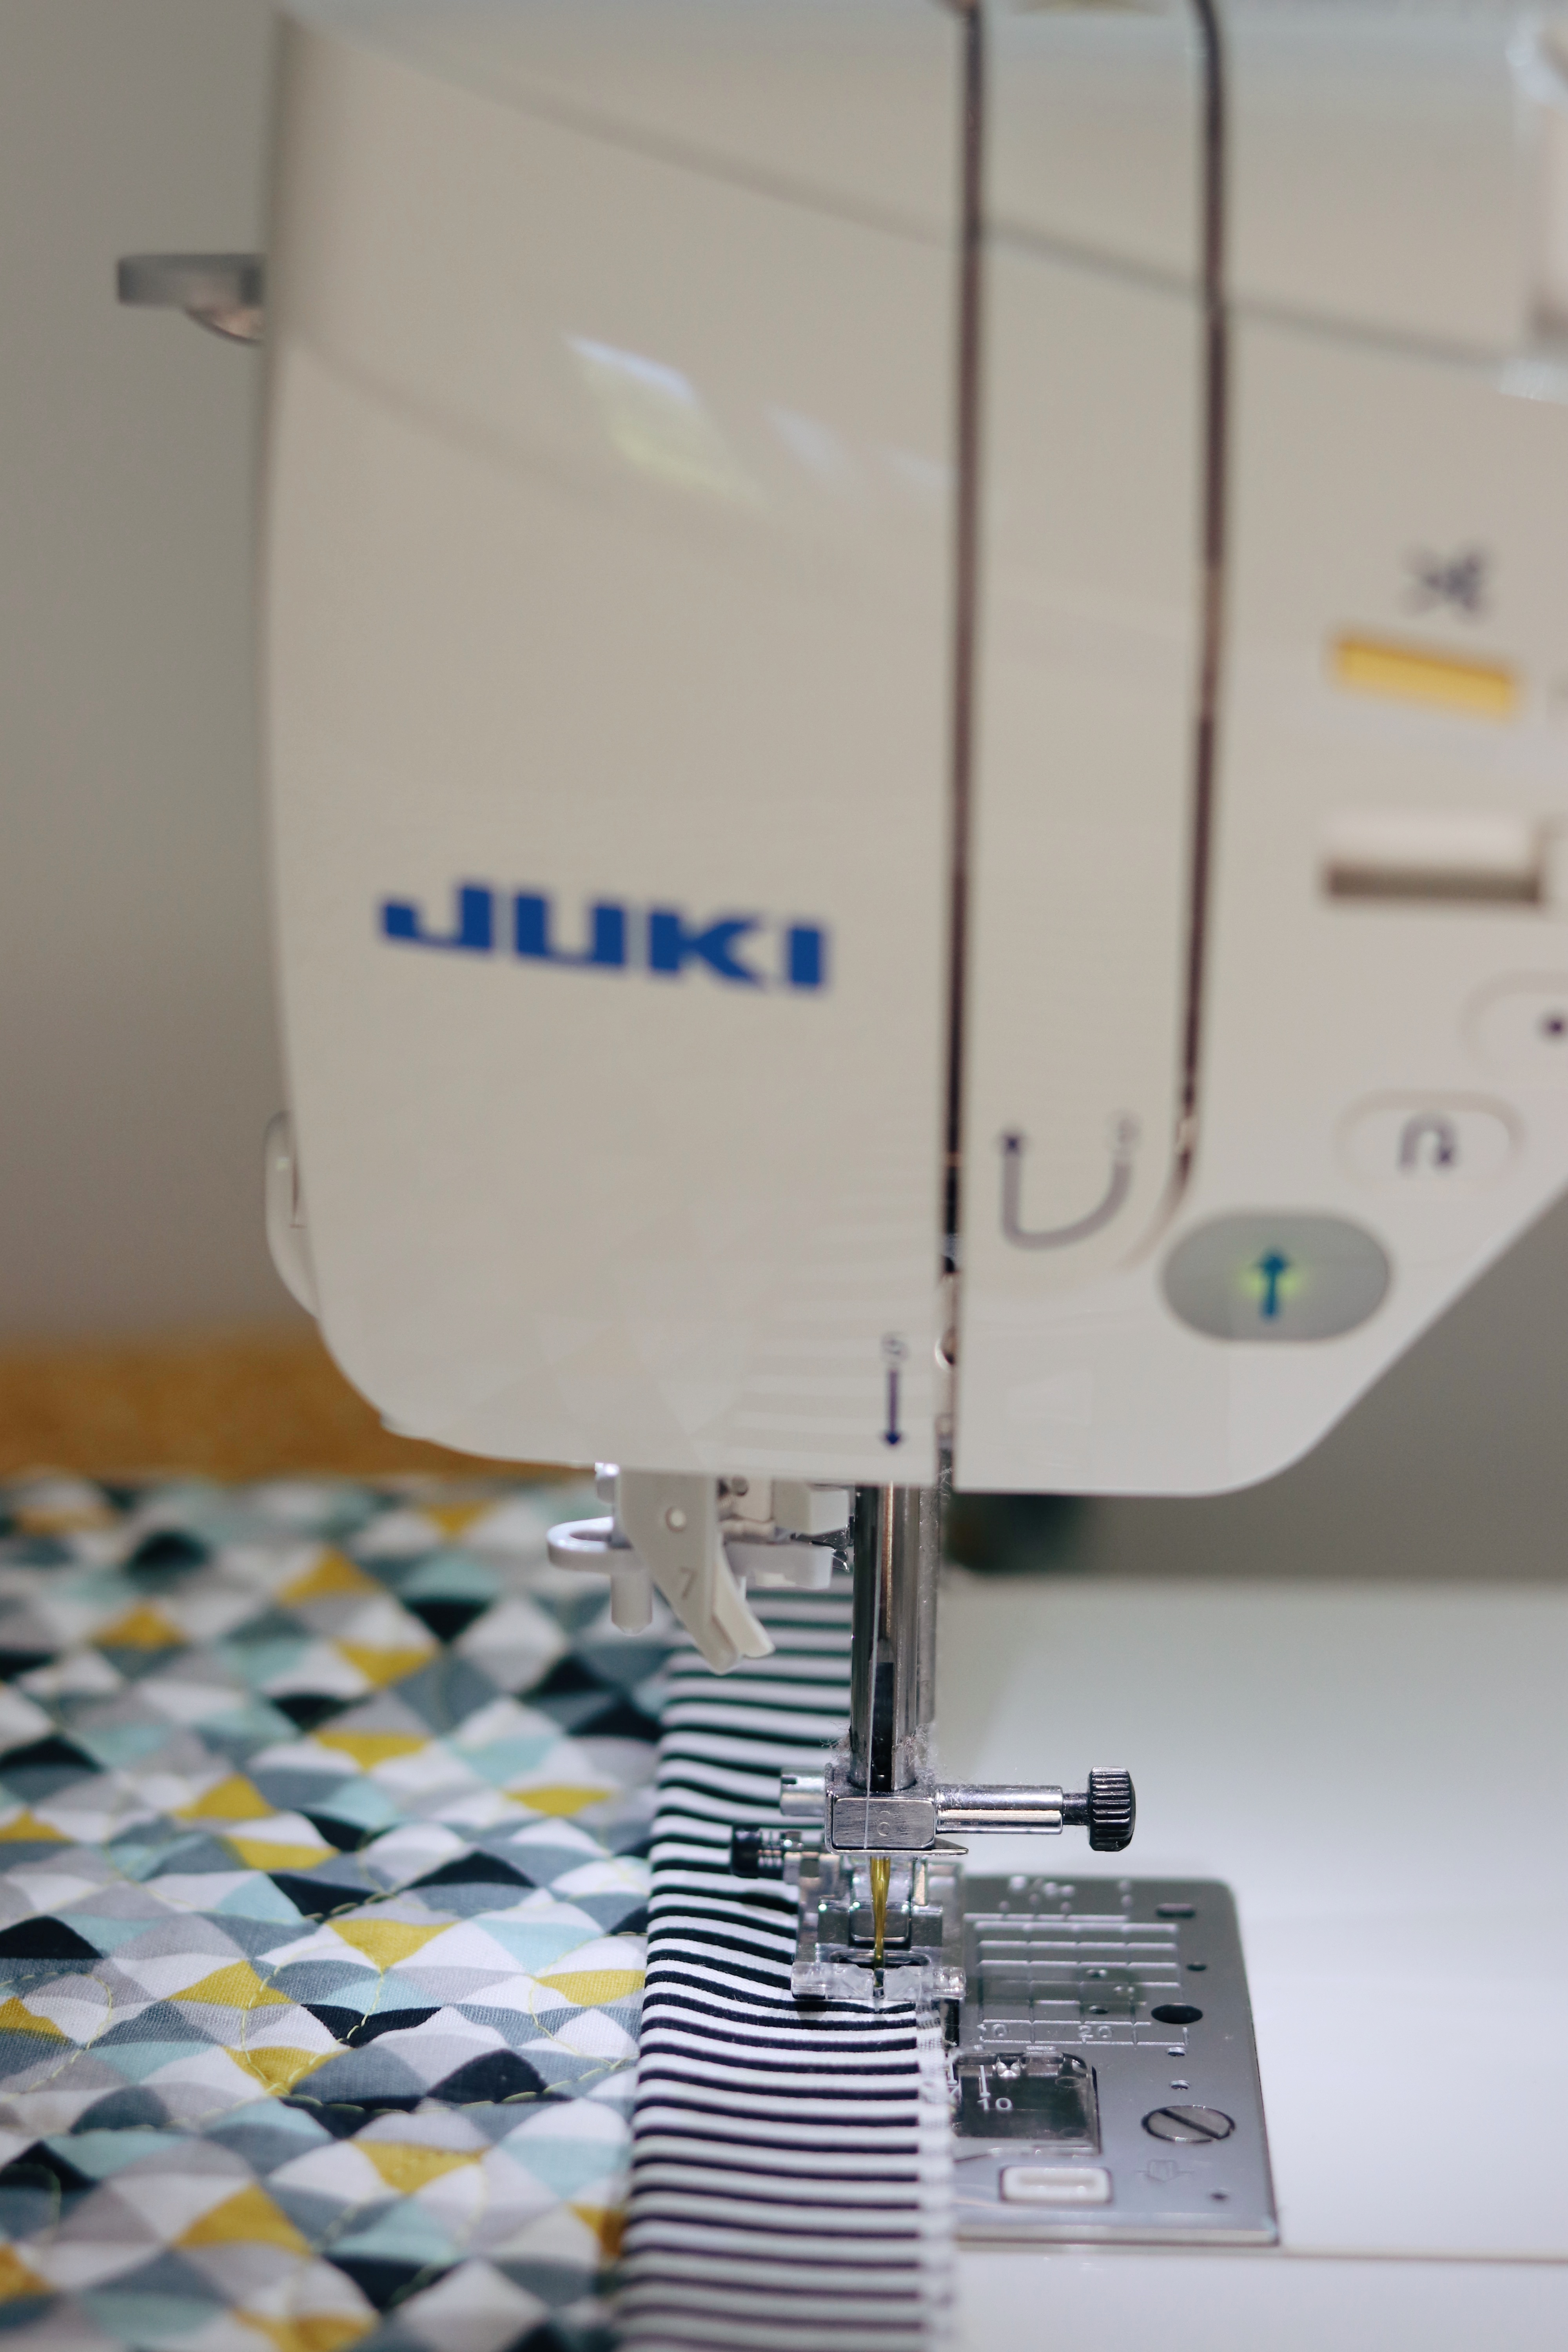 Machine stitching the binding with the Juki DX7